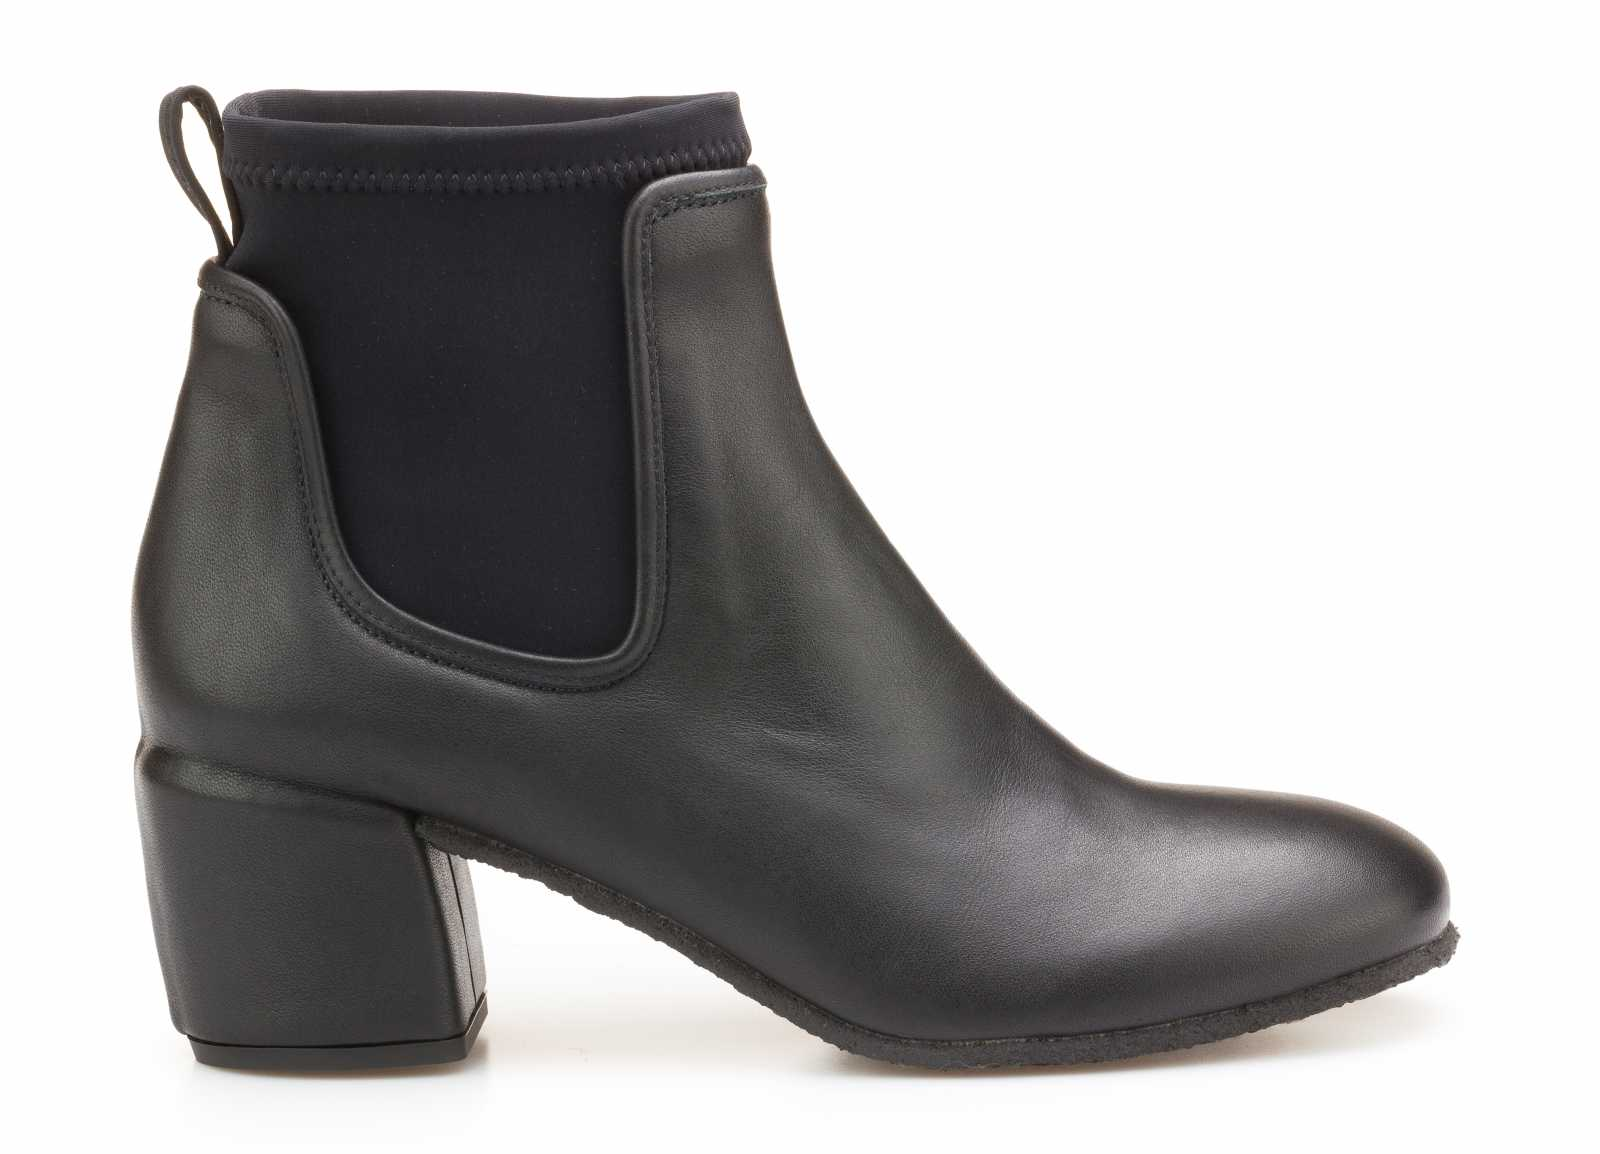 ANKLE BOOT 10821